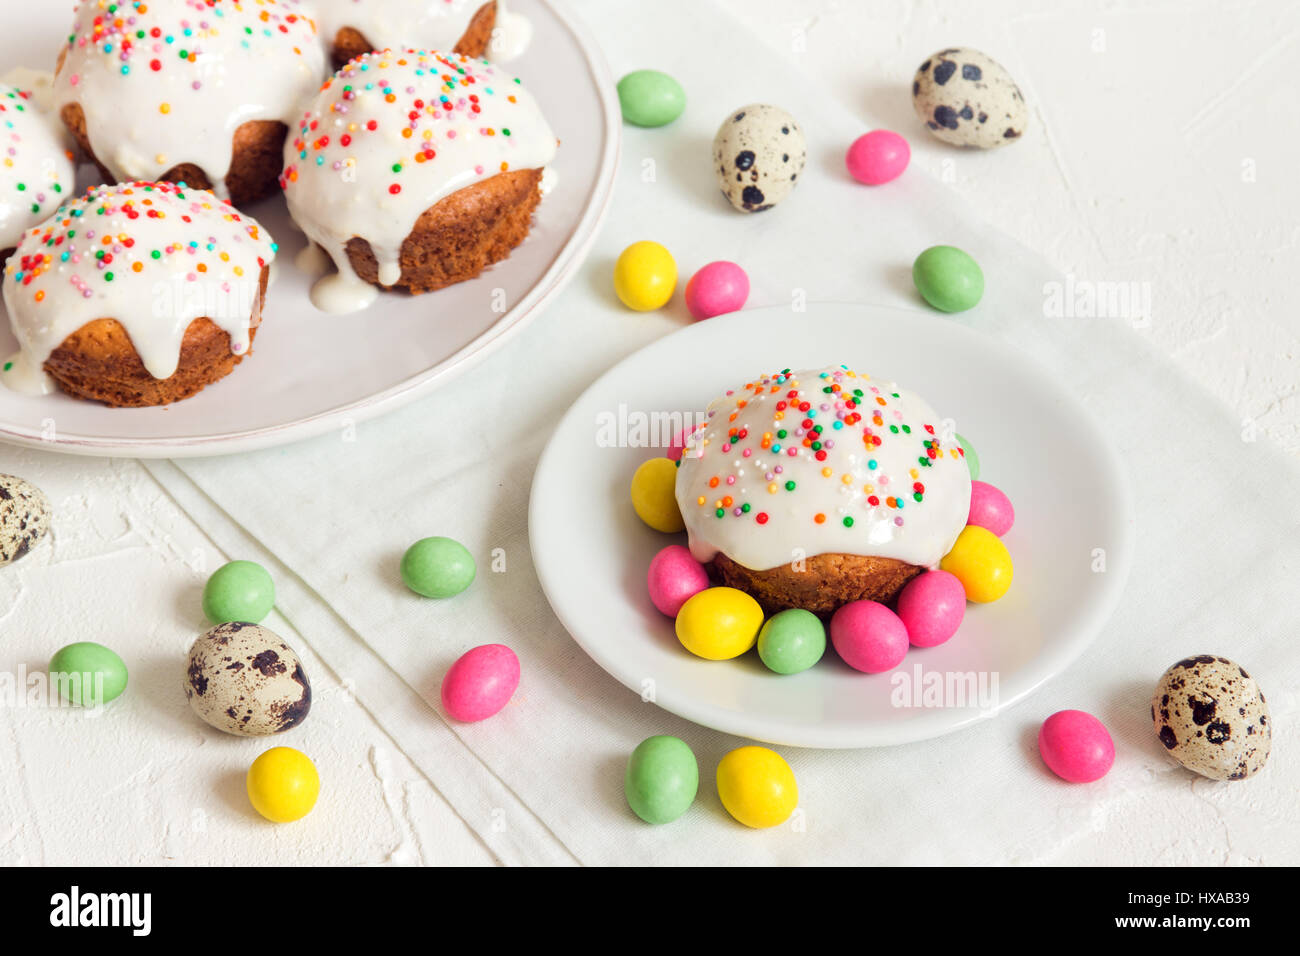 Easter cakes with white icing and easter festive decor on white background with copy space - homemade festive pastry - Stock Image